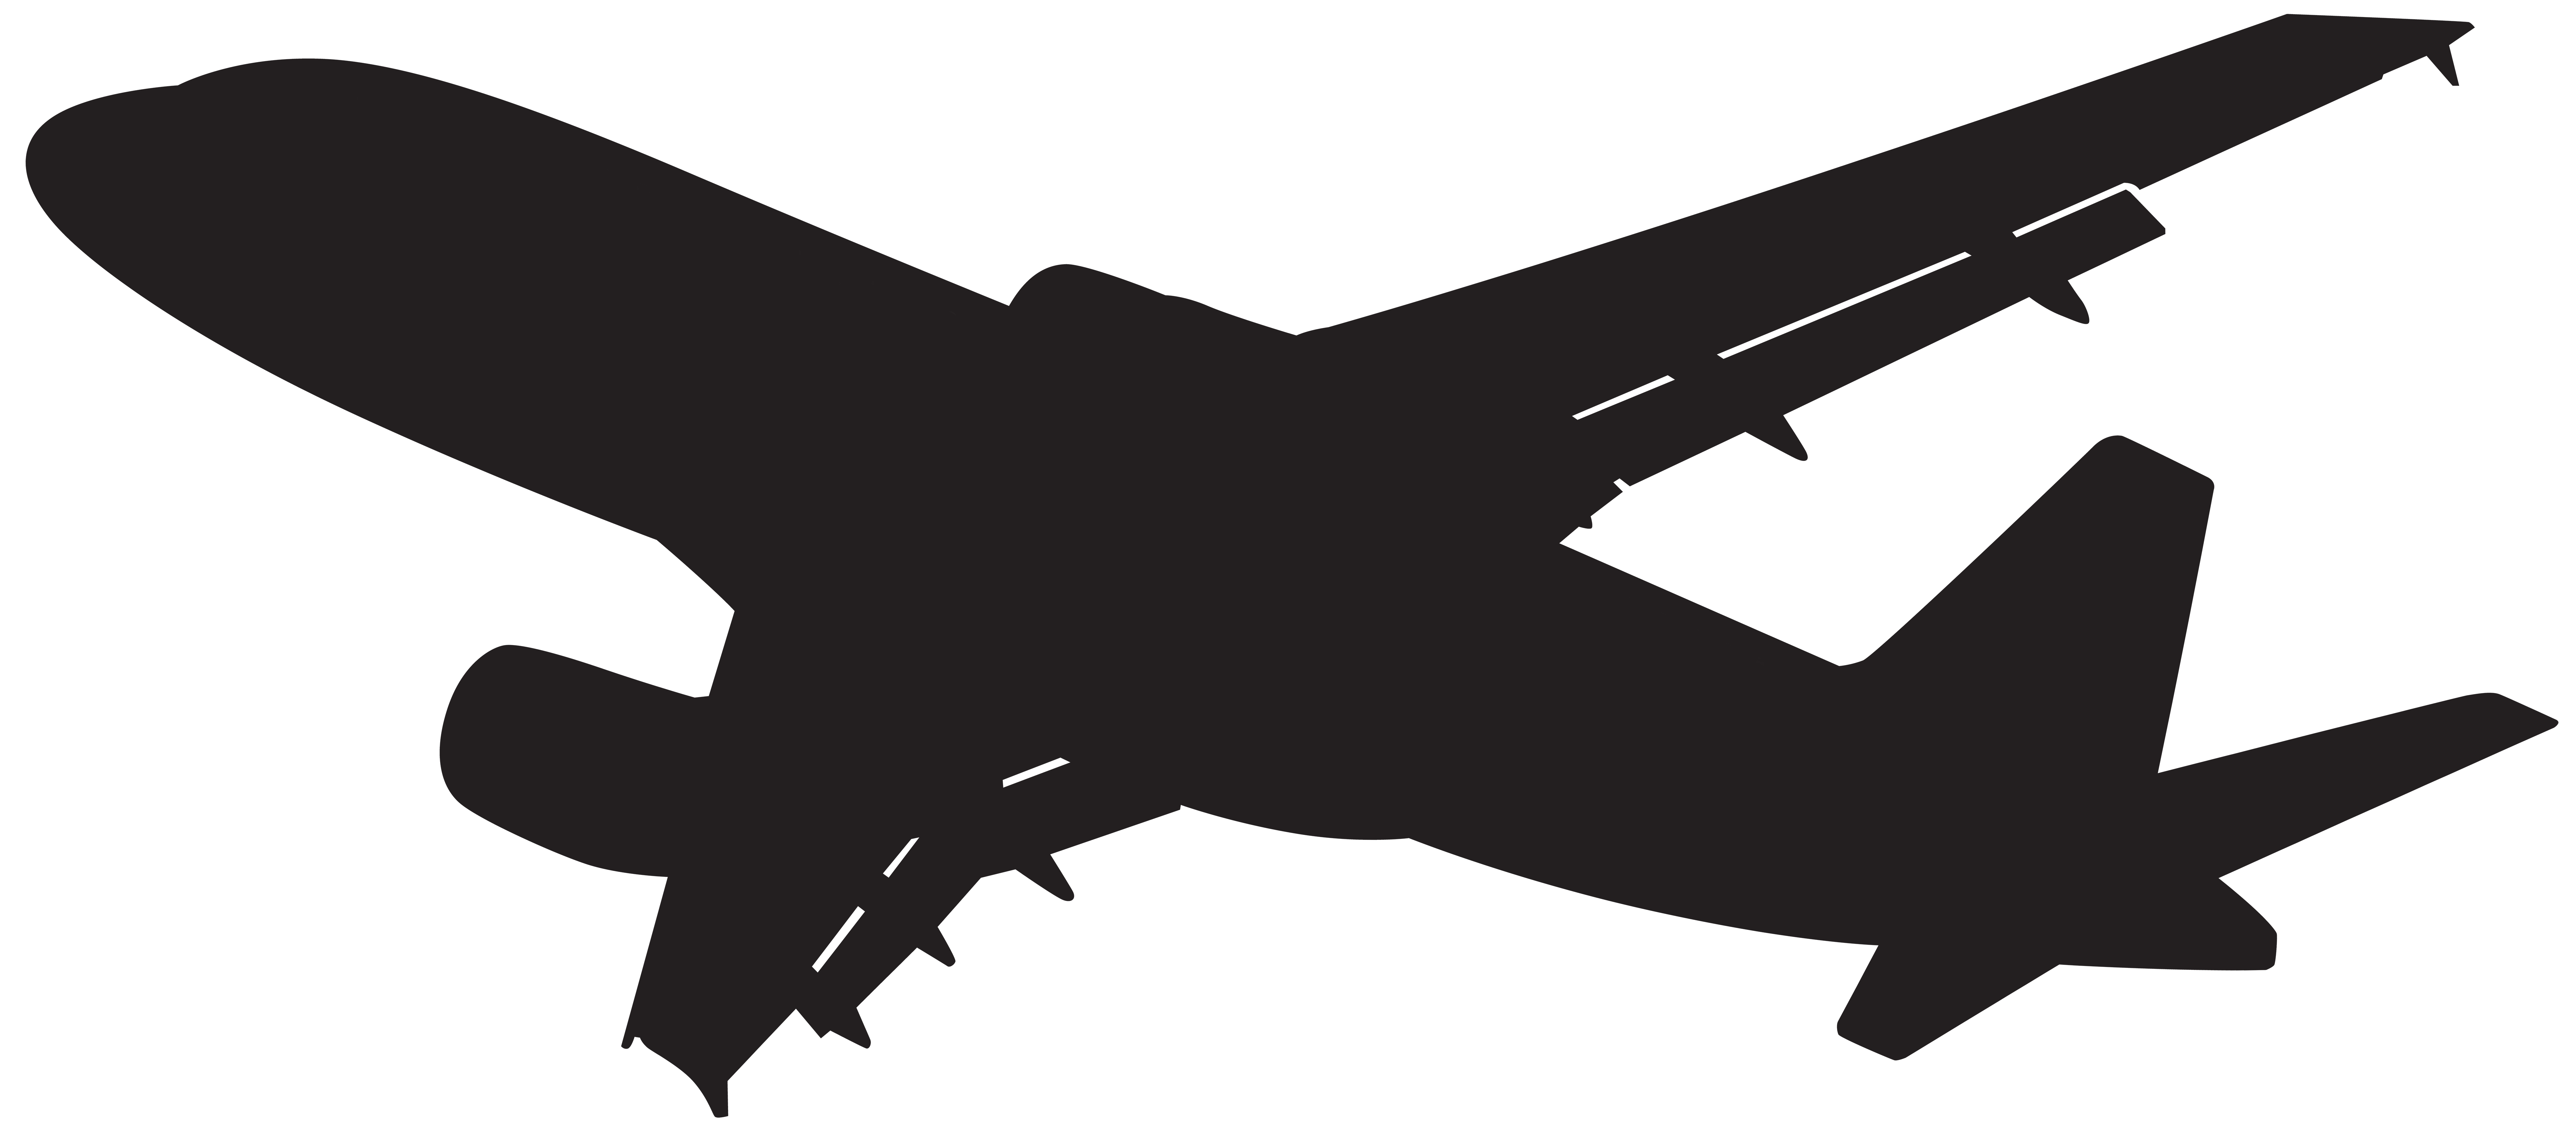 Airplane silhouette png. Plane clip art gallery